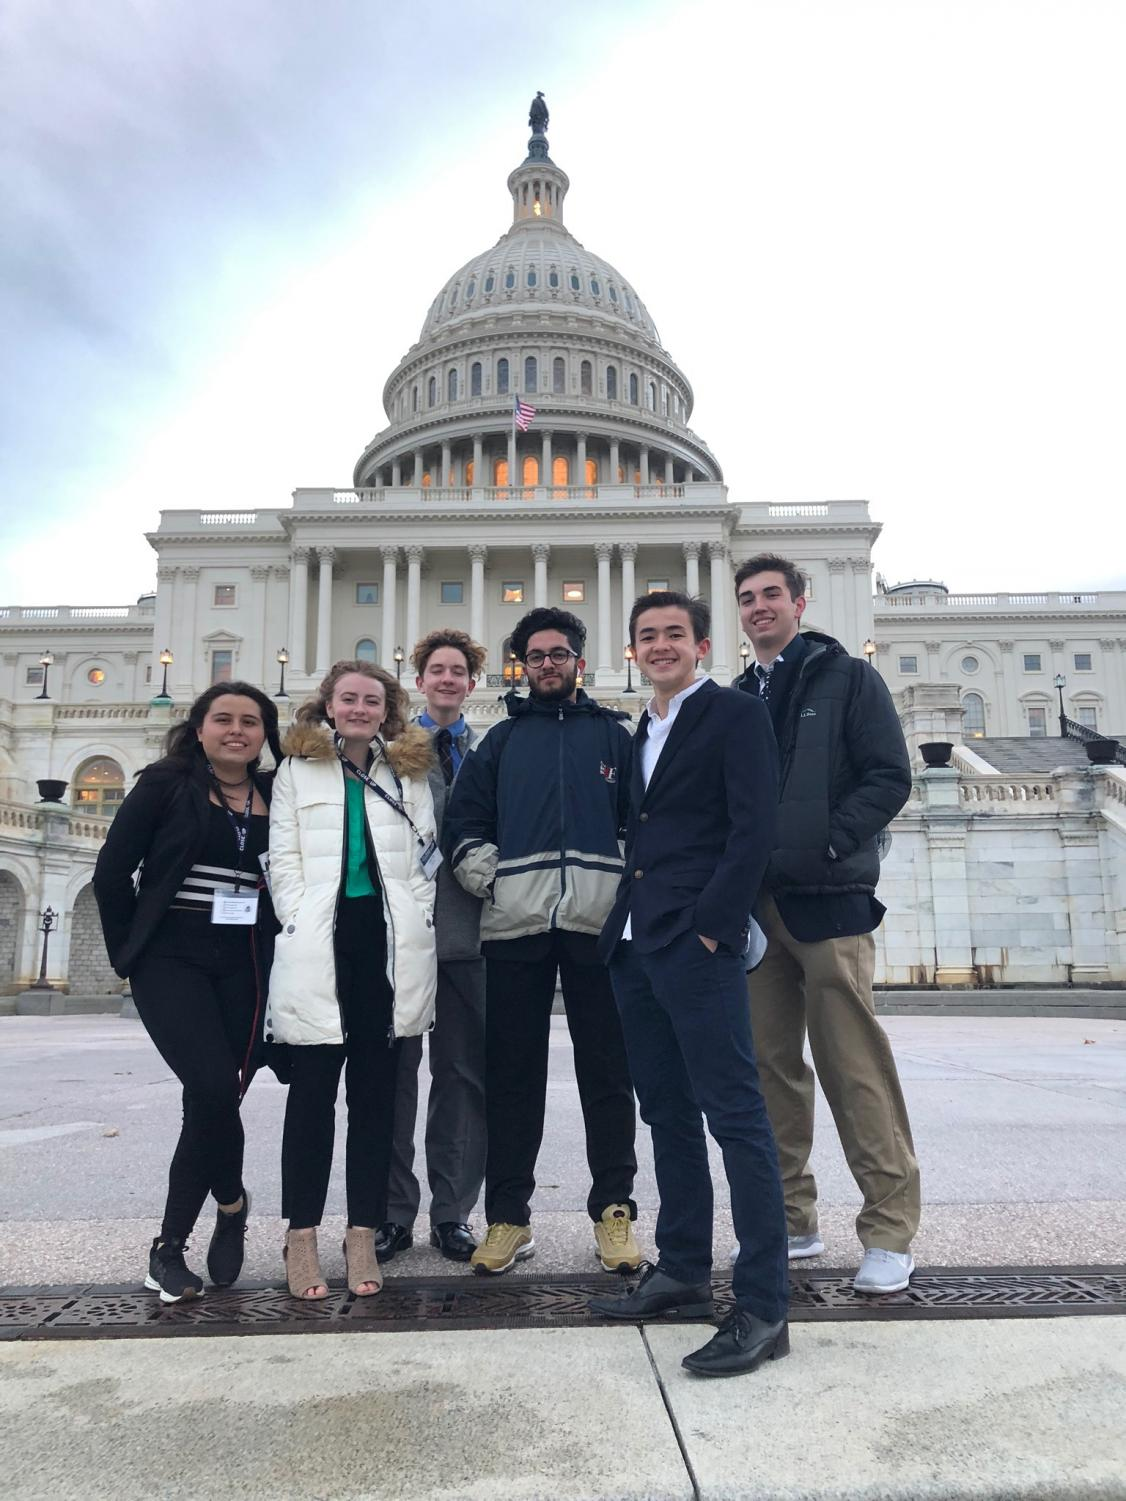 From left to right: CCHS students Victoria Ordonez, Hattie Carter, Jack Dillon, Sherwin Shirazi, Kieran Ferguson, and Brandon Lambert in front of the Capitol building in Washington, D.C.